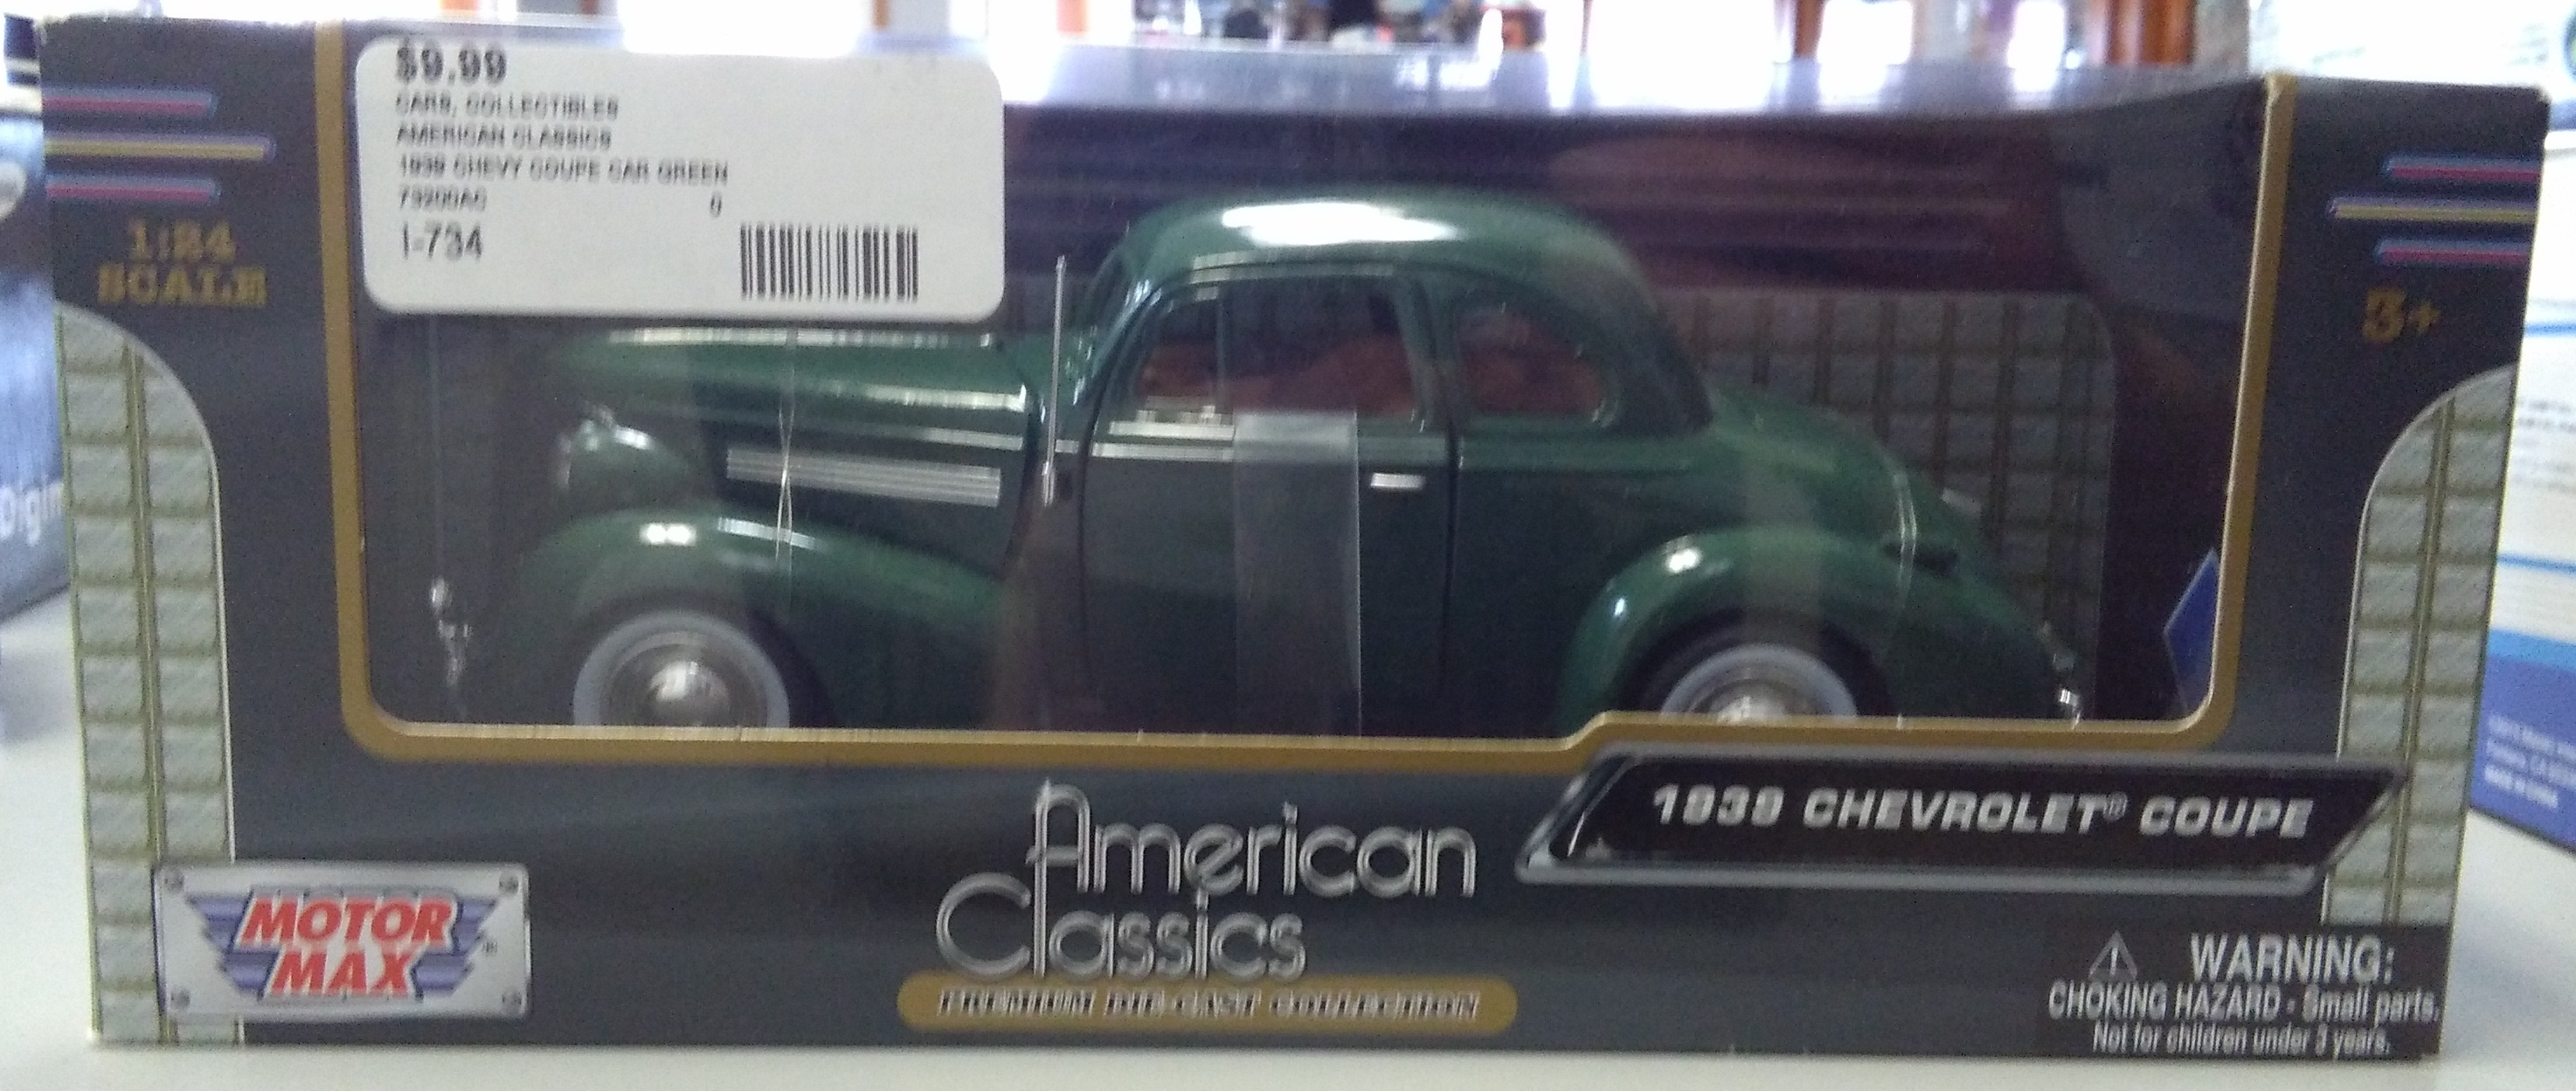 AMERICAN CLASSICS 1939 chevrolet coupe